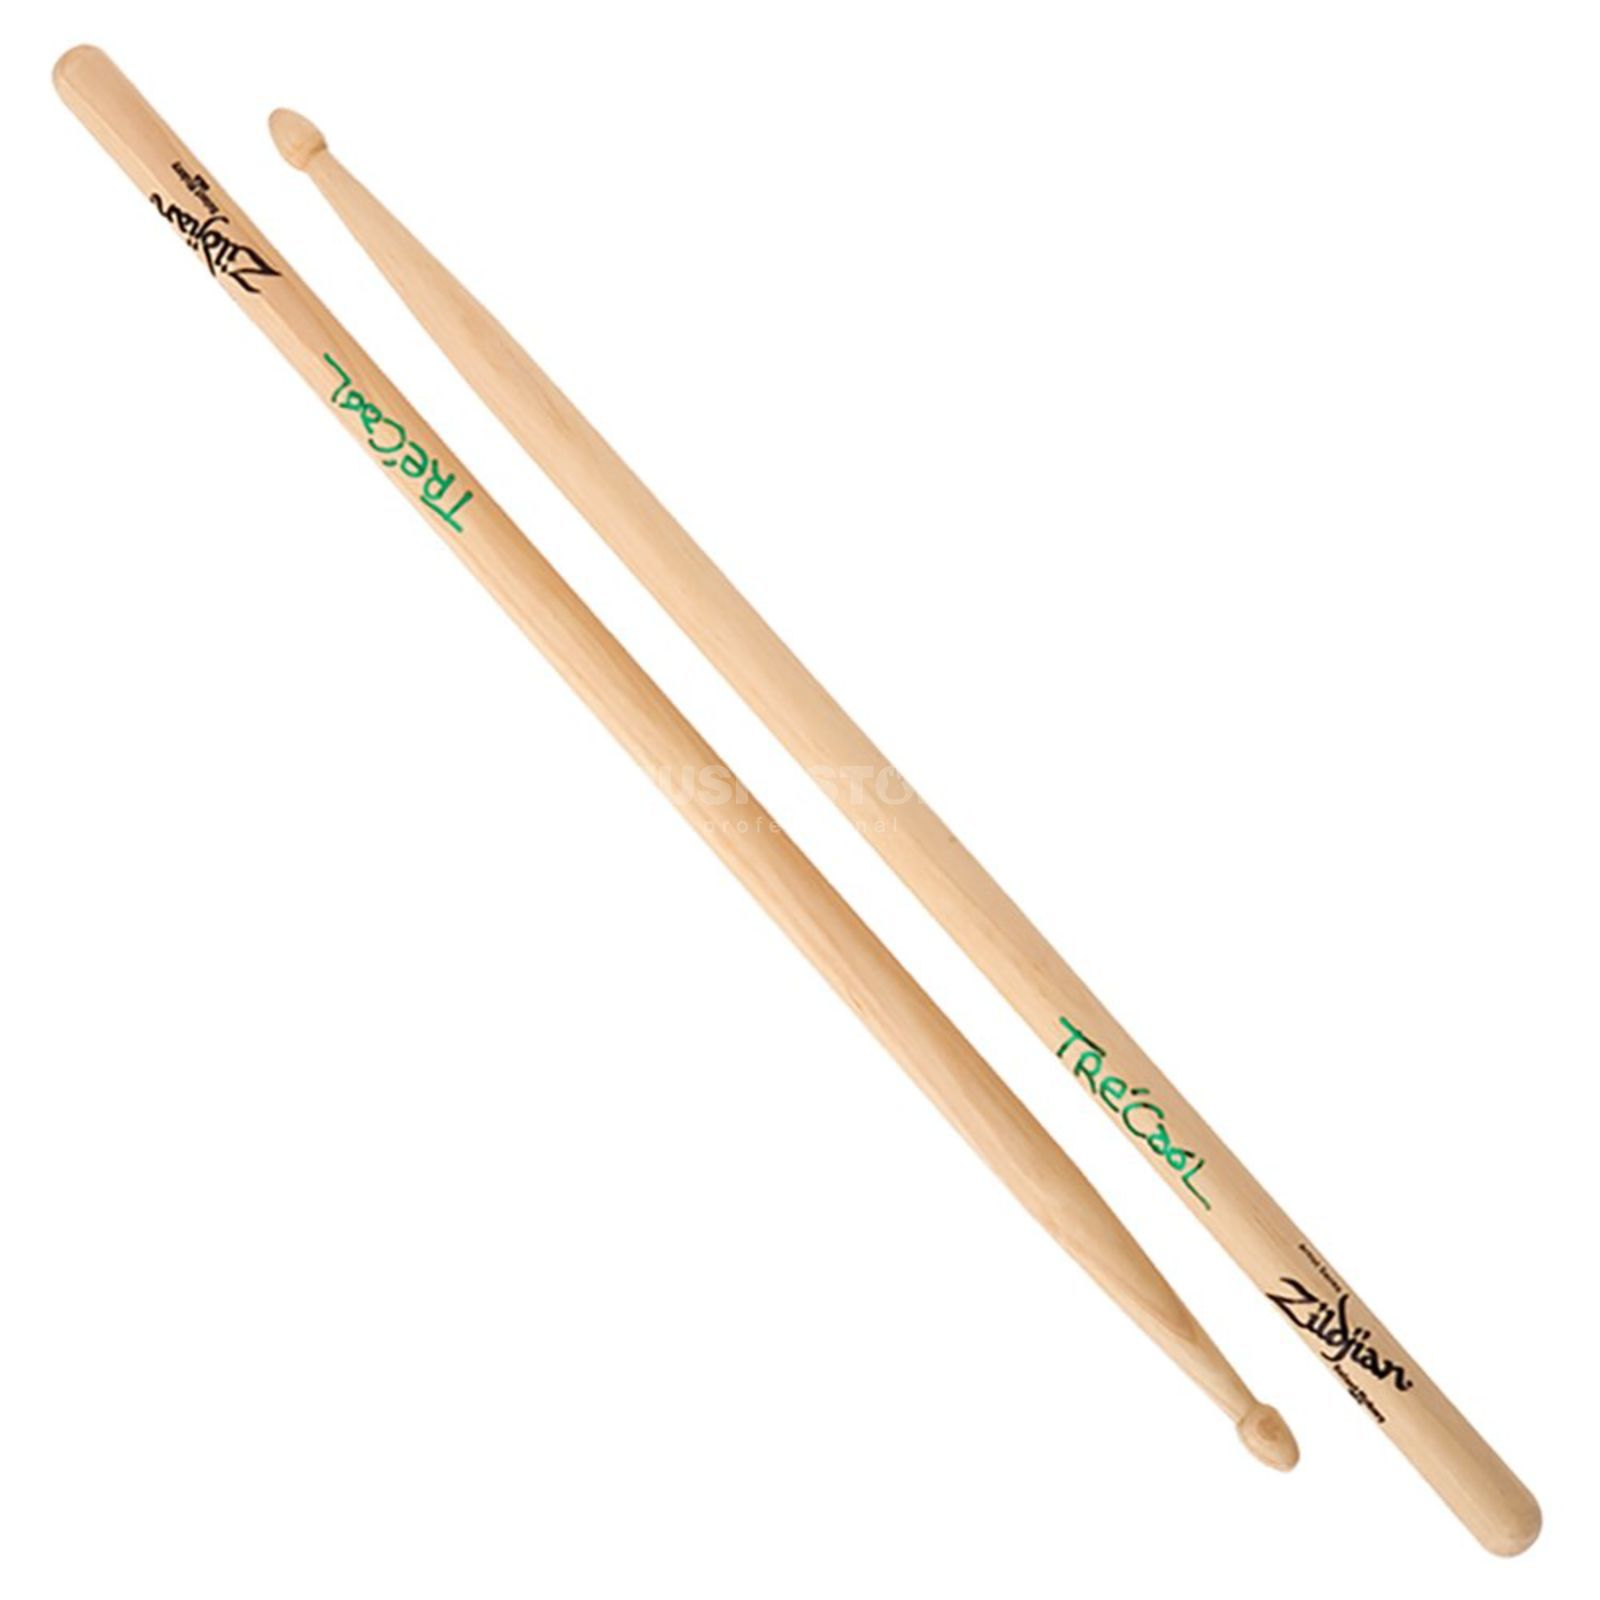 Zildjian Tre Cool Hickory Sticks Natural Finish, Wood Tip Immagine prodotto